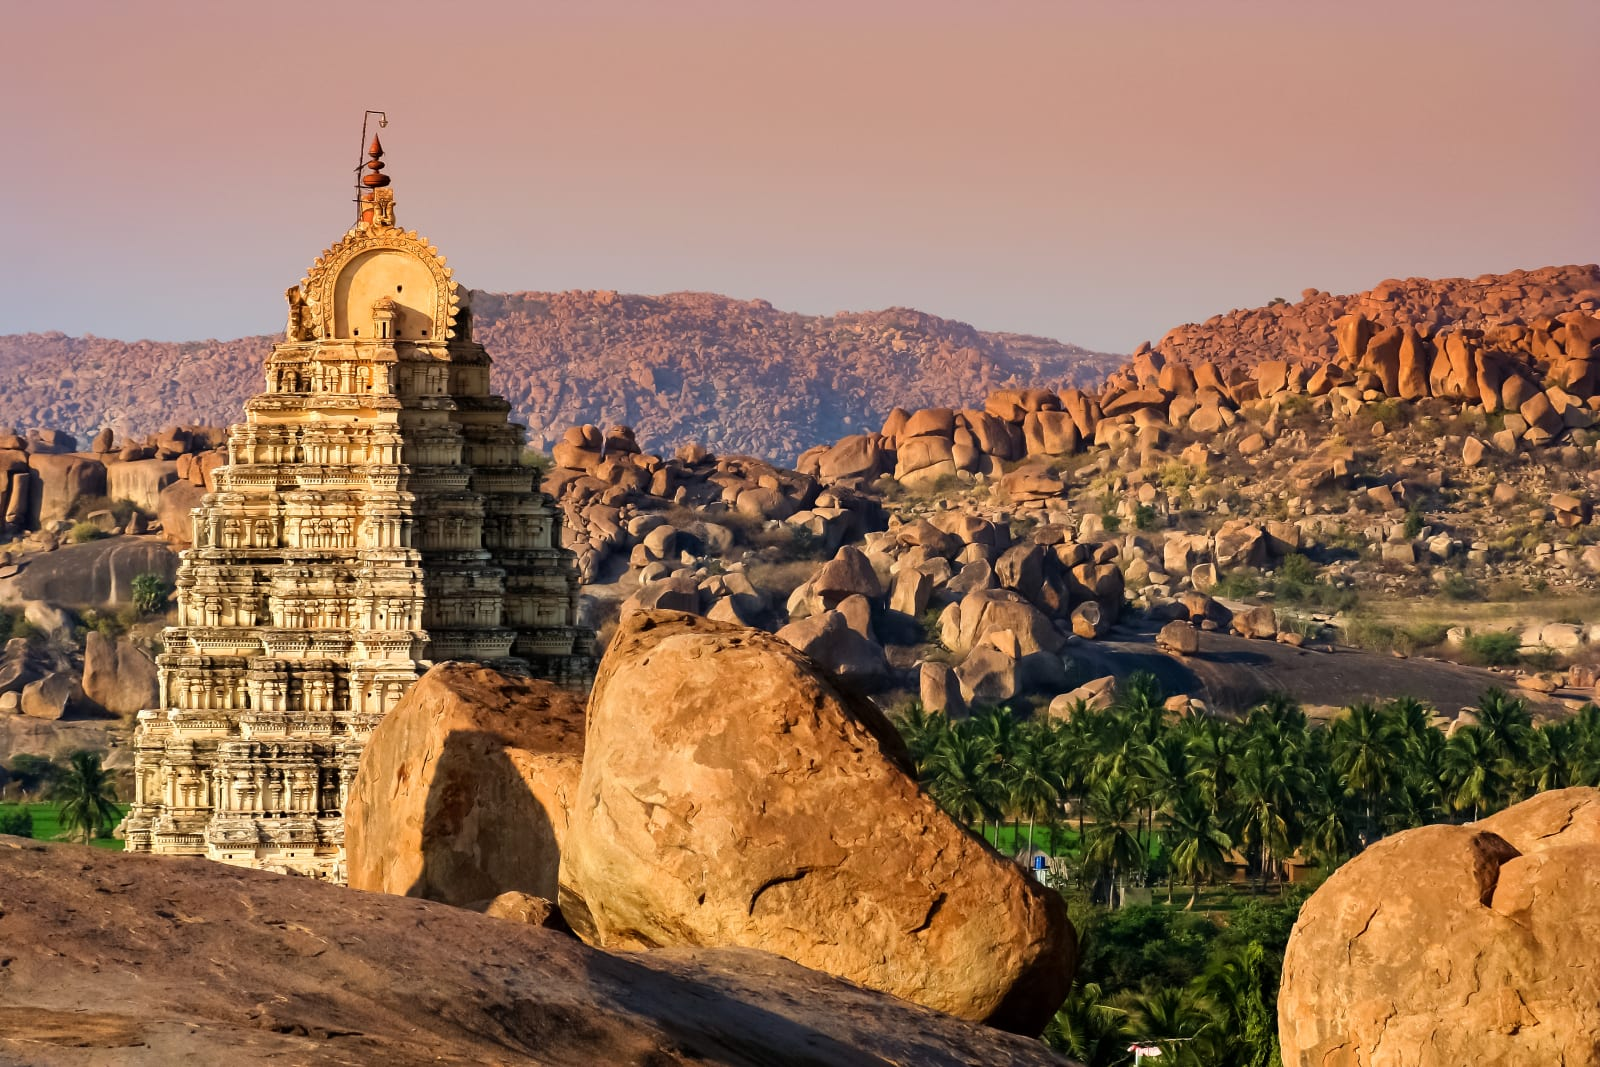 Virupaksha temple in Hampi, Karmataka